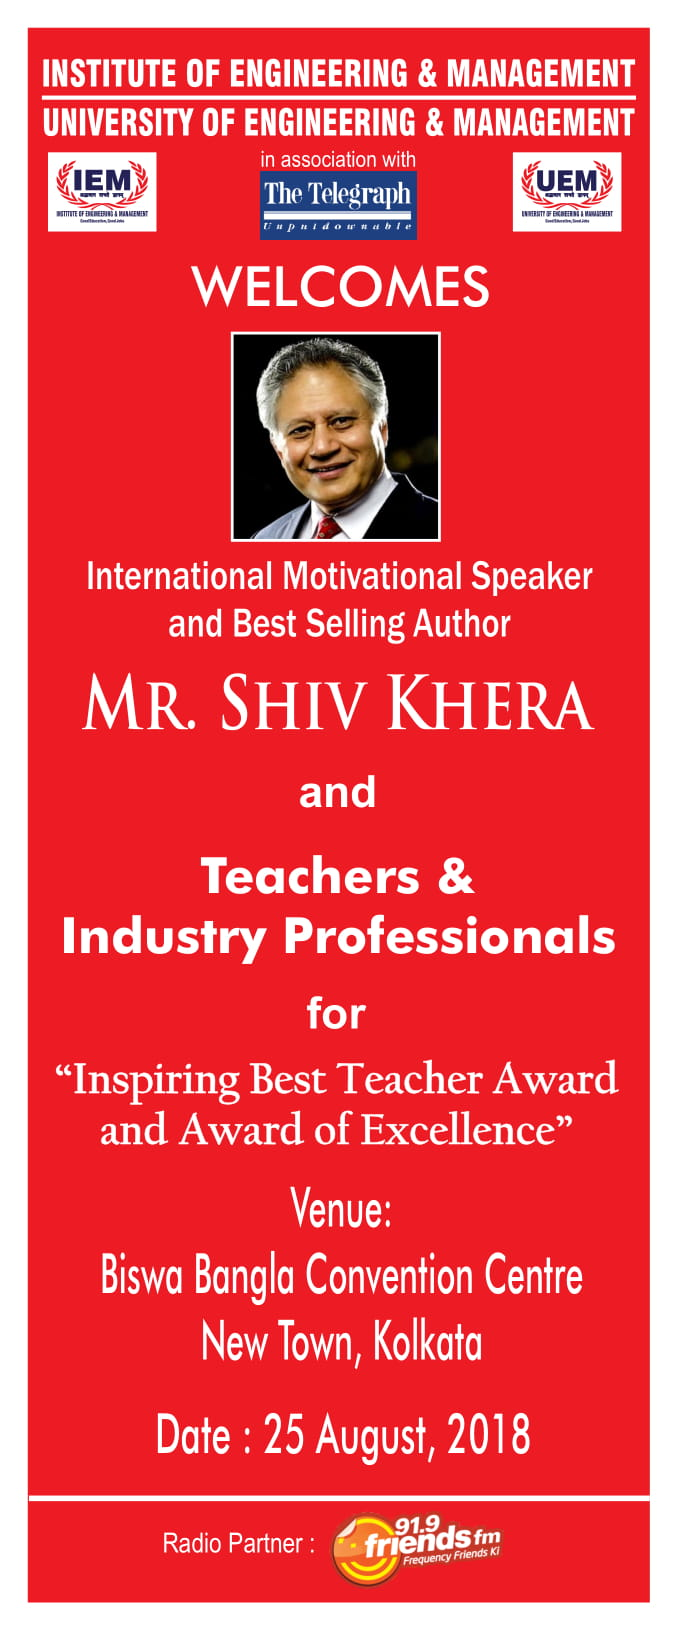 IEM-UEM welcomes International Motivational Speaker Mr  Shiv Khera